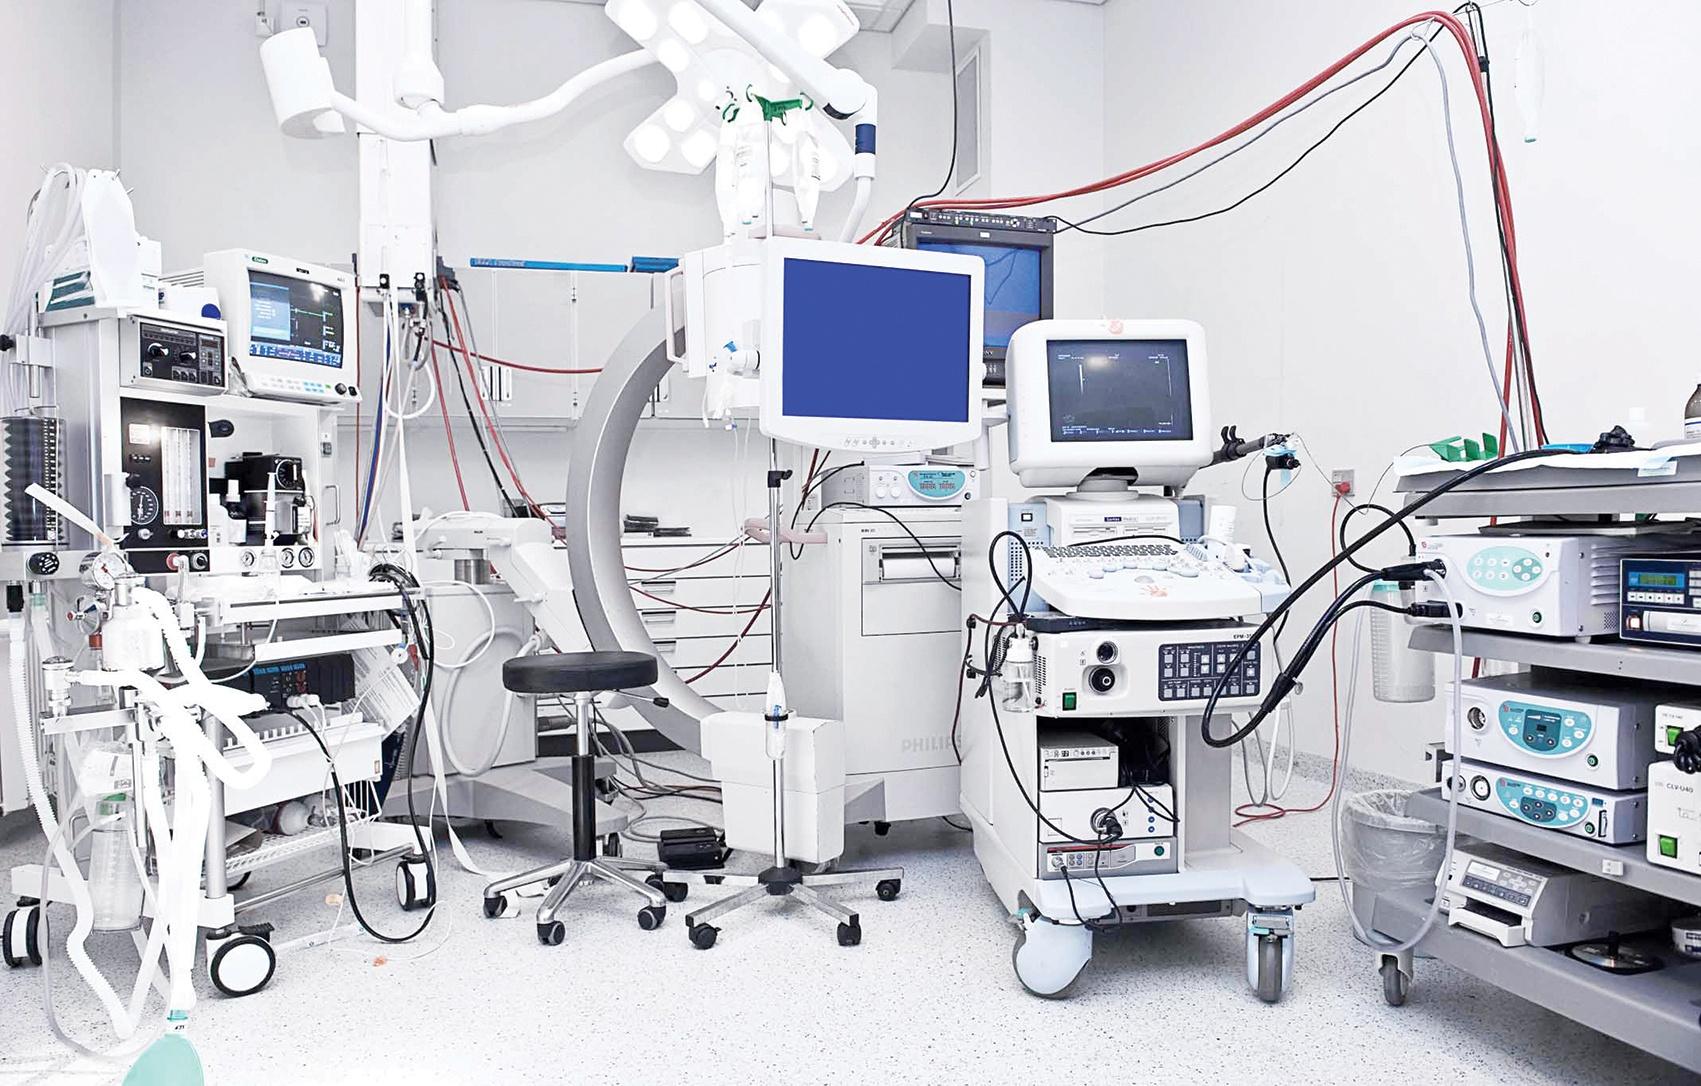 Find The Best Vendor For Buying Medical Equipment